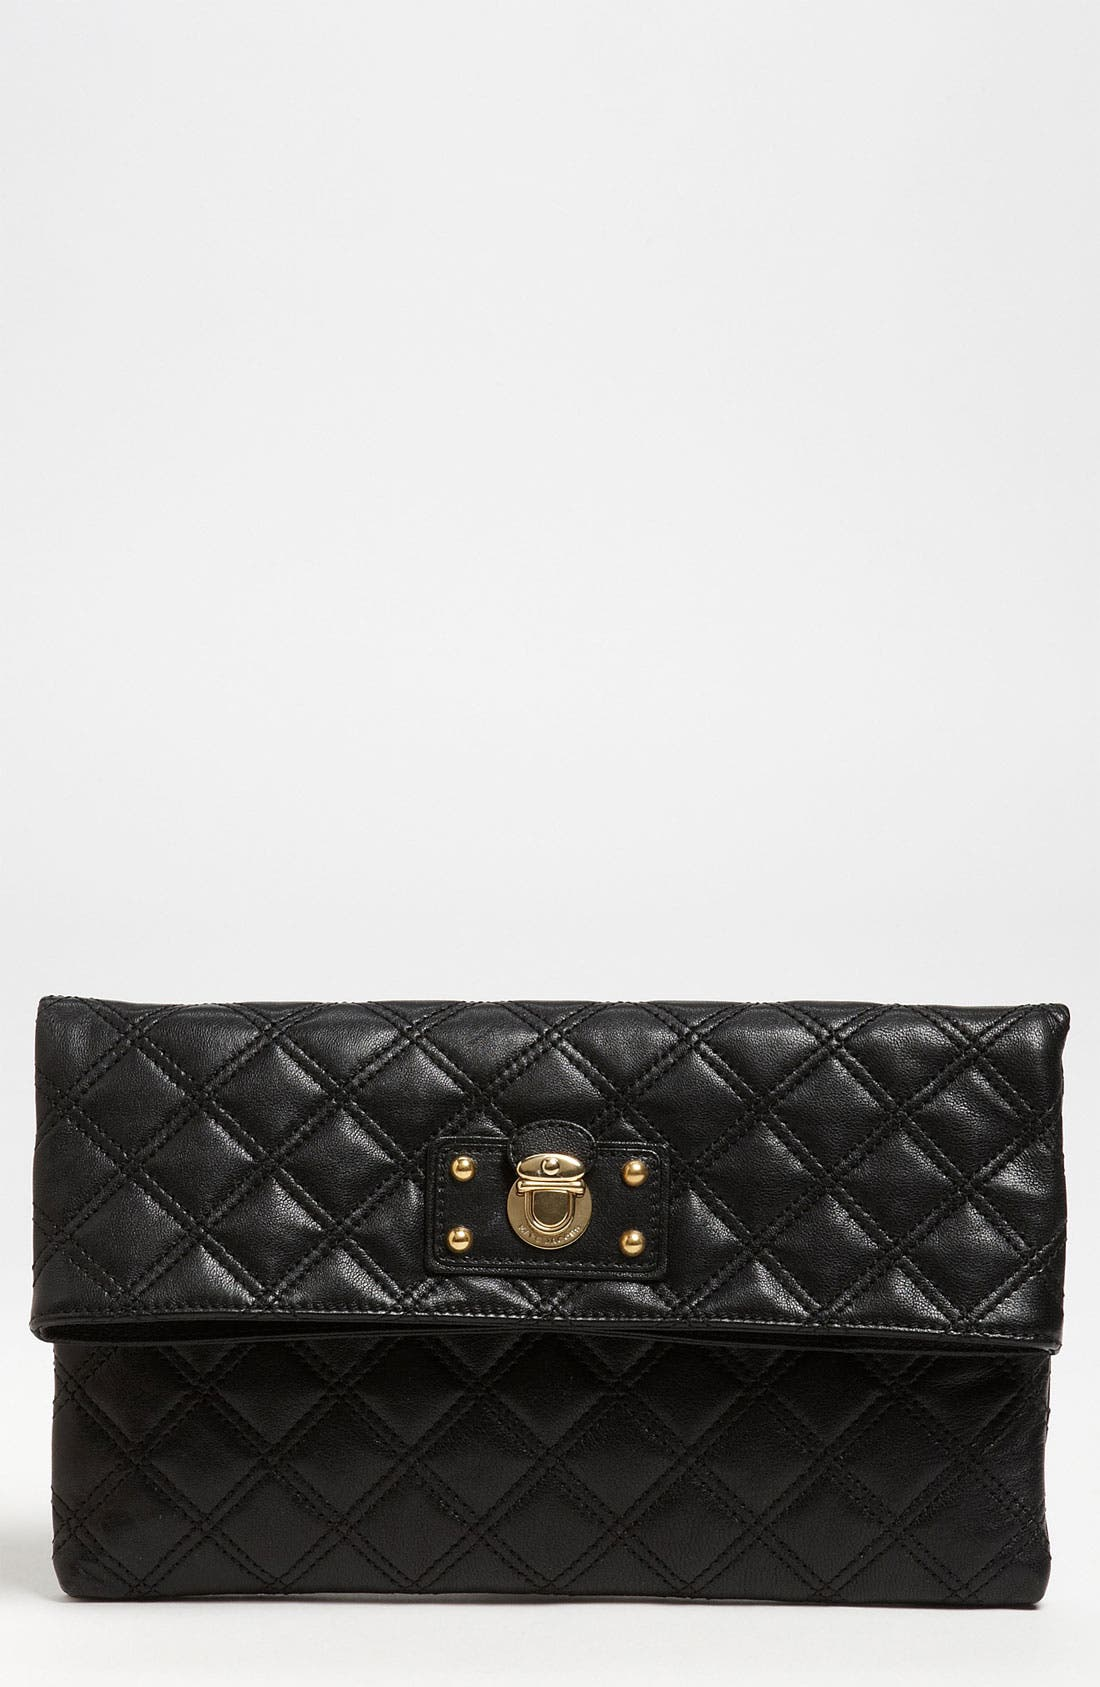 Main Image - MARC JACOBS 'Quilting - Eugenie' Leather Clutch